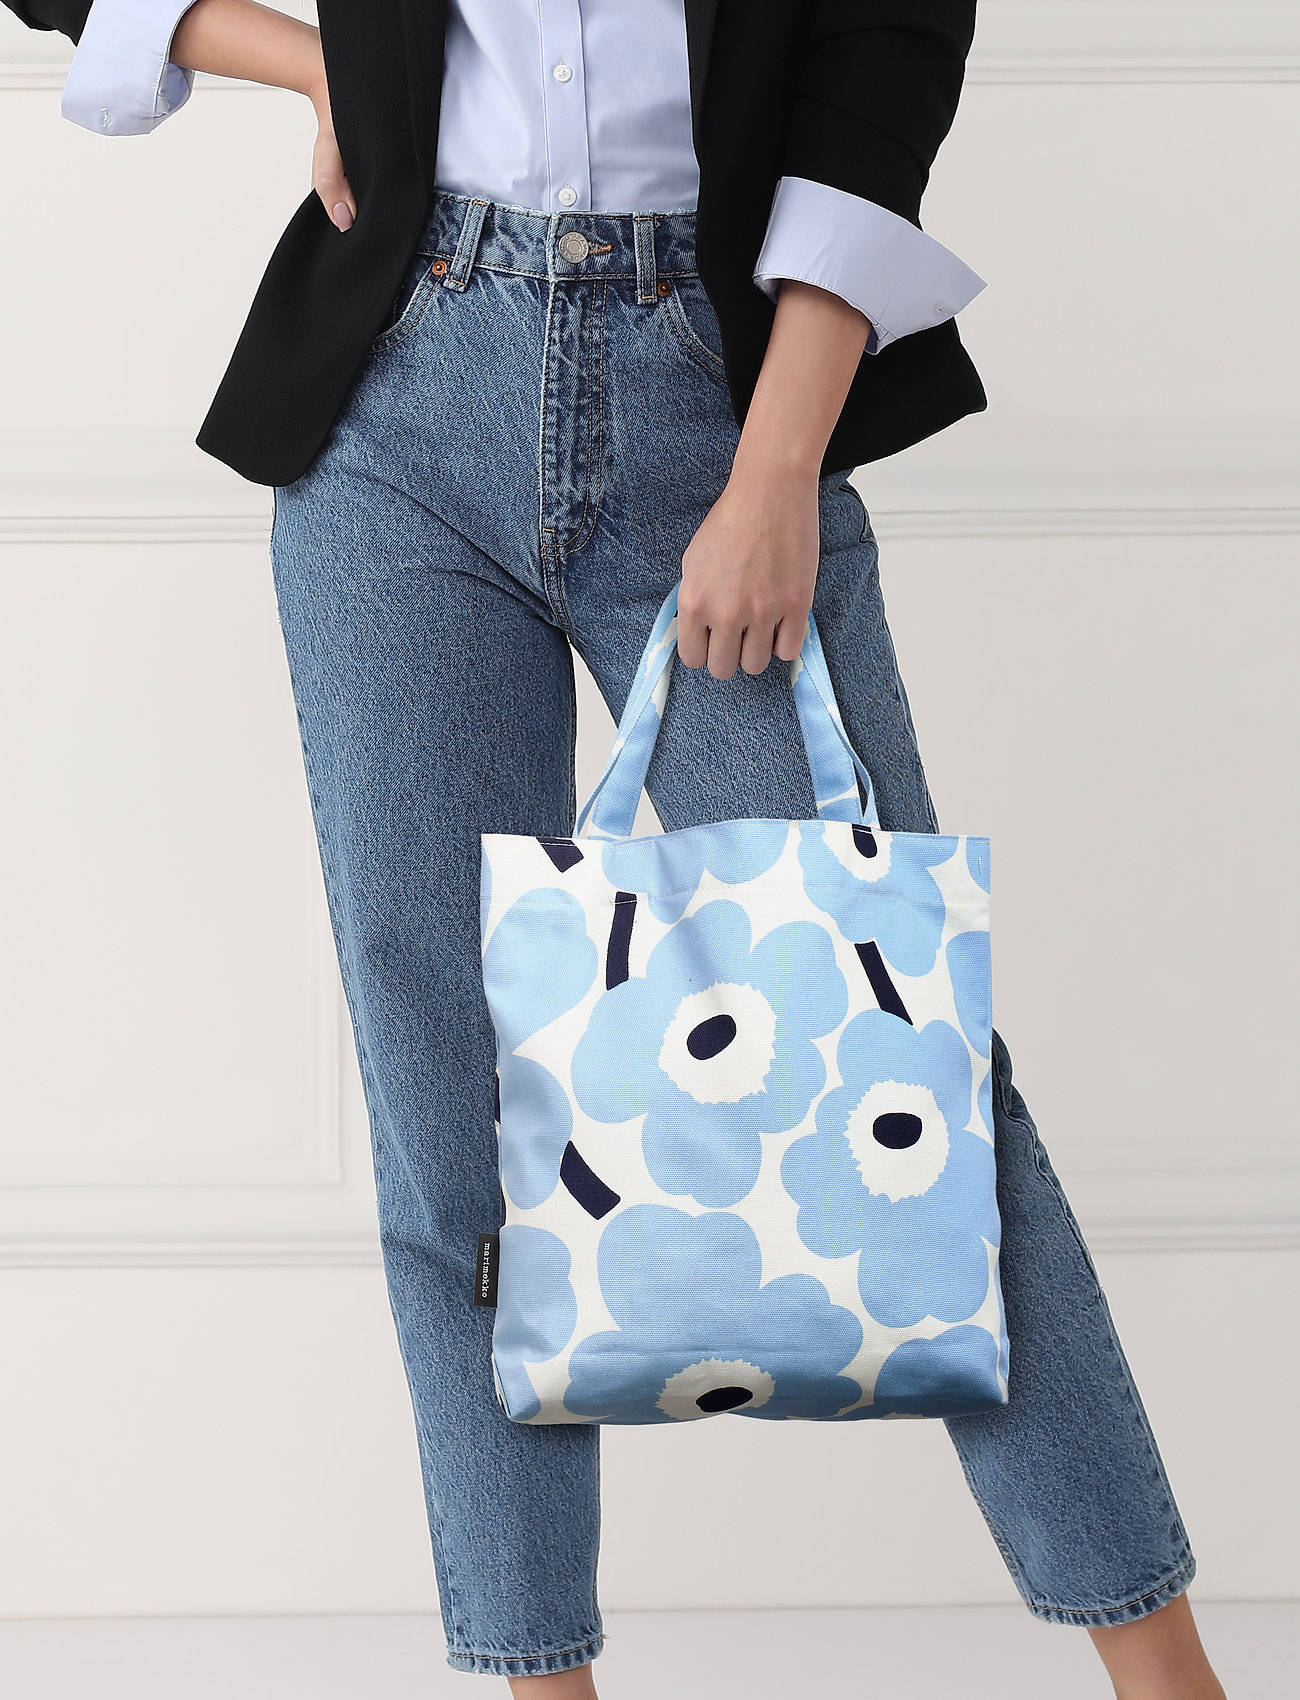 Marimekko NOTKO PIENI UNIKKO Bag - WHITE,LIGHT BLUE,DARK BLUE